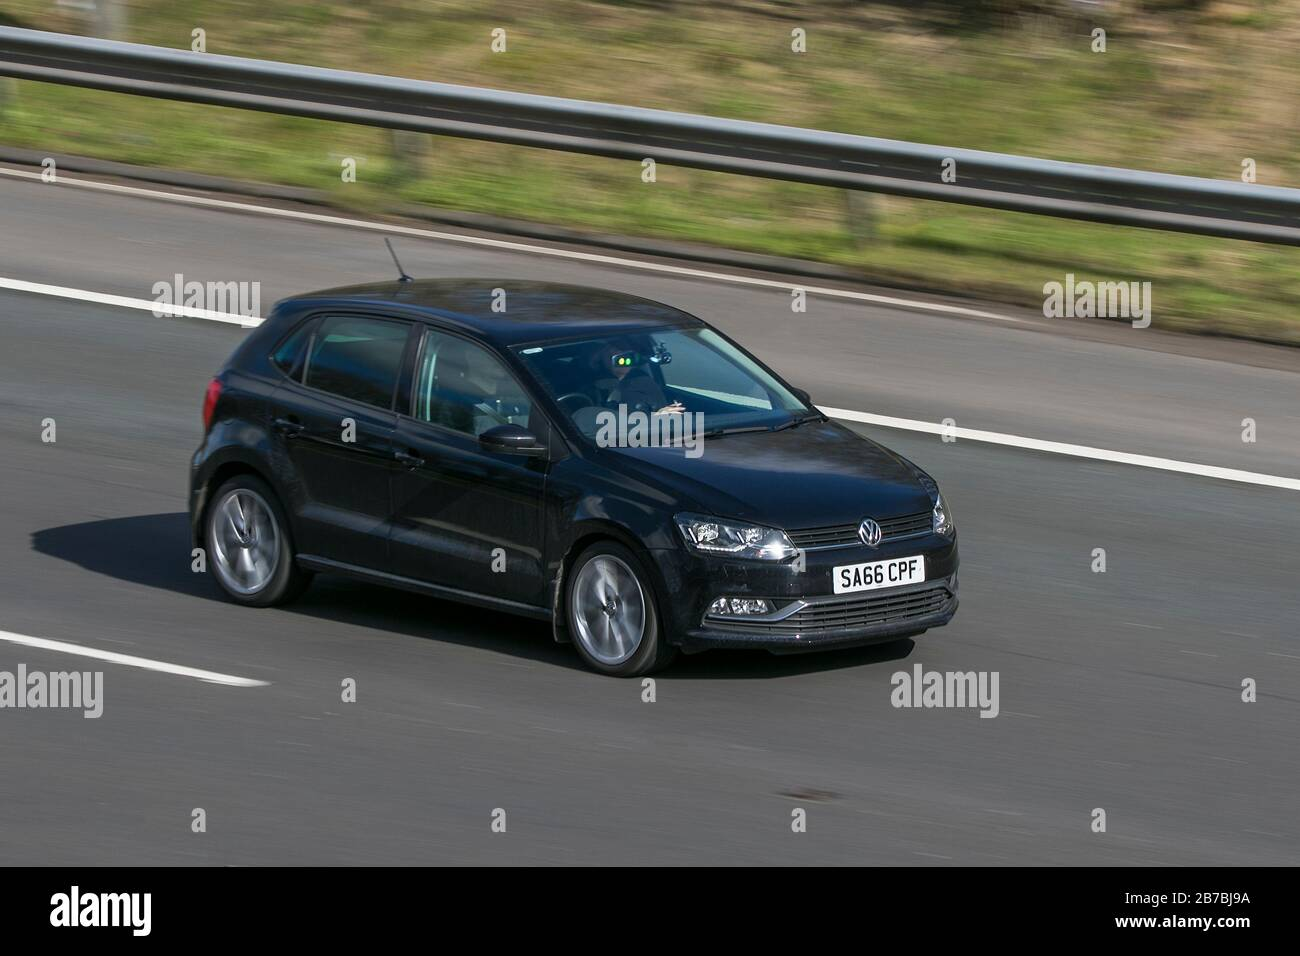 Volkswagen Polo High Resolution Stock Photography And Images Alamy